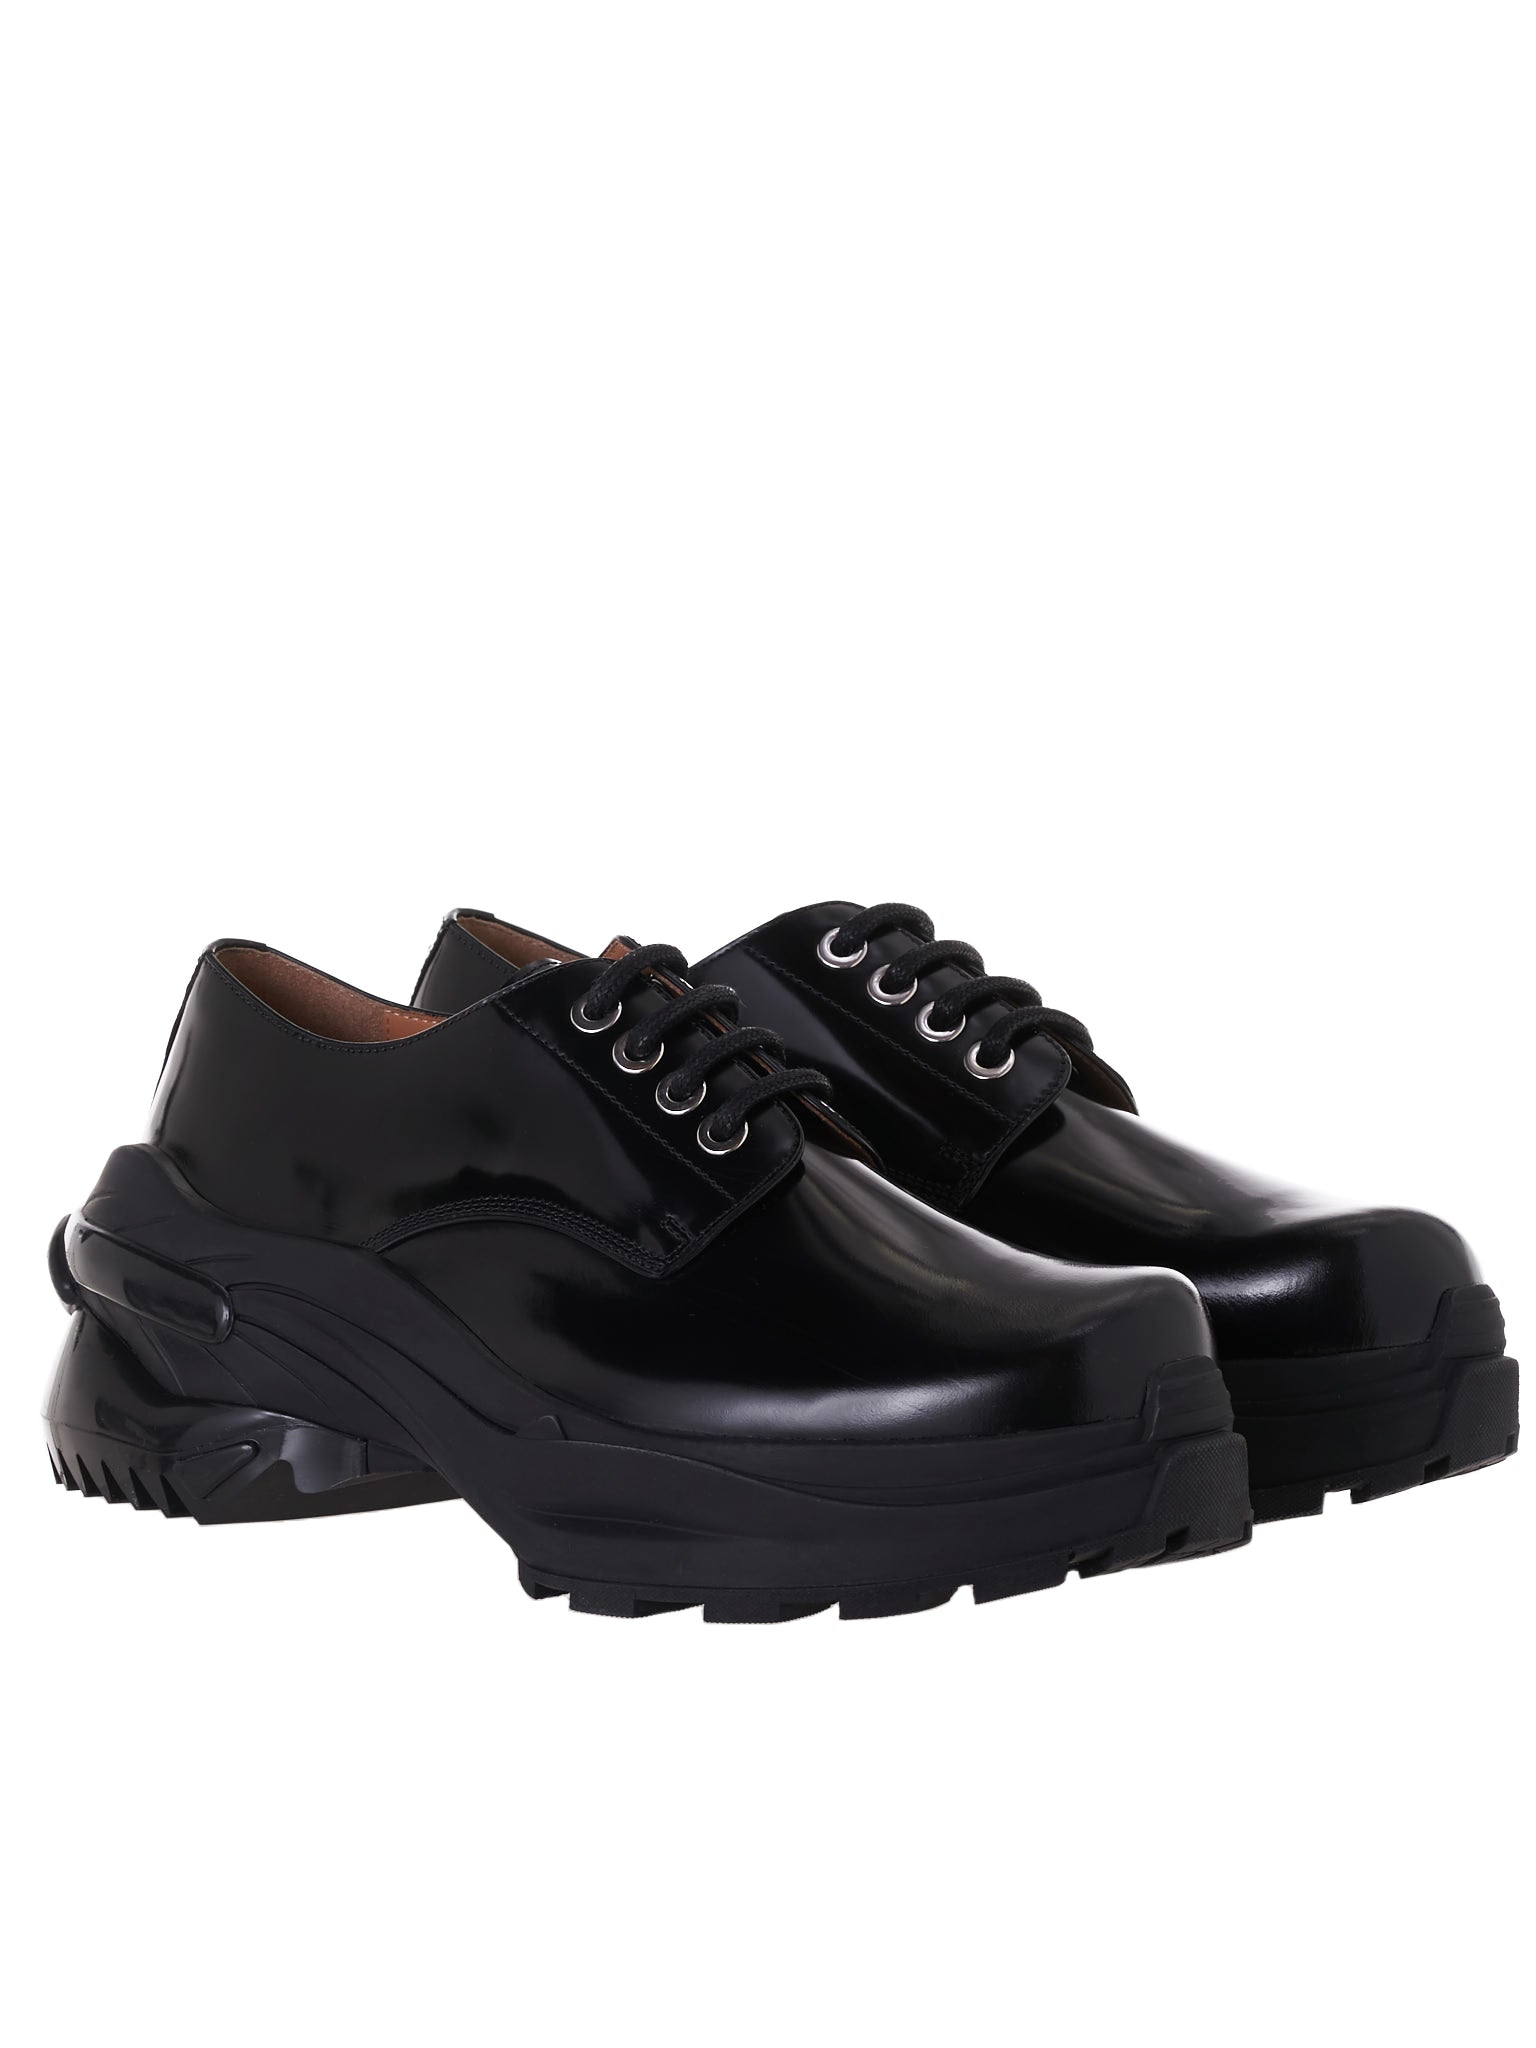 Ridge Sole Derbys (S37WQ0318-P1993-BLACK)